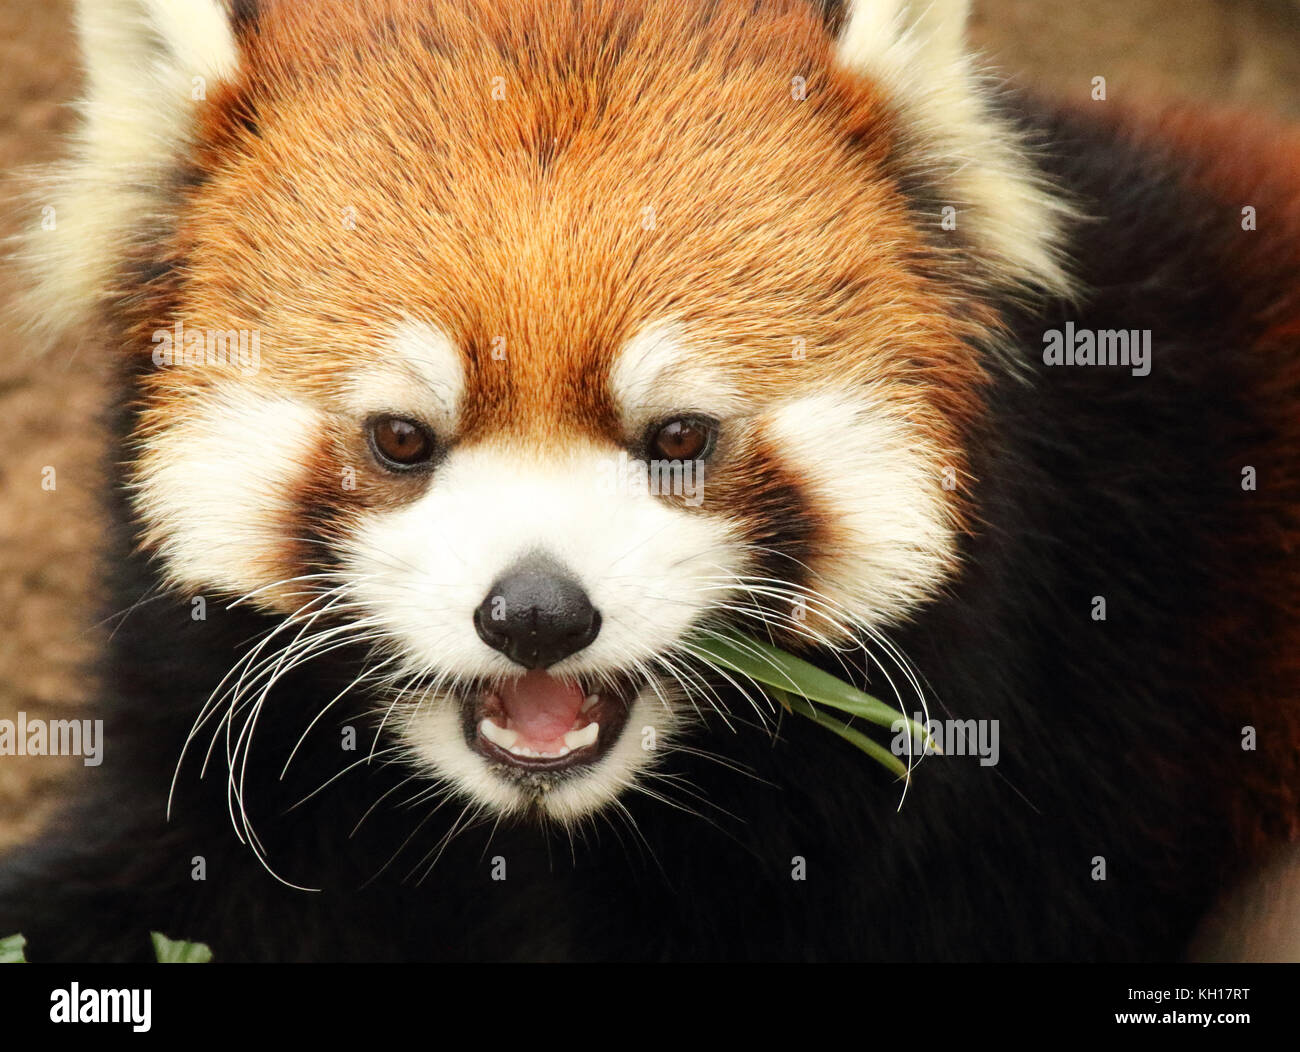 A Red Panda giving a low growl while feeding. - Stock Image